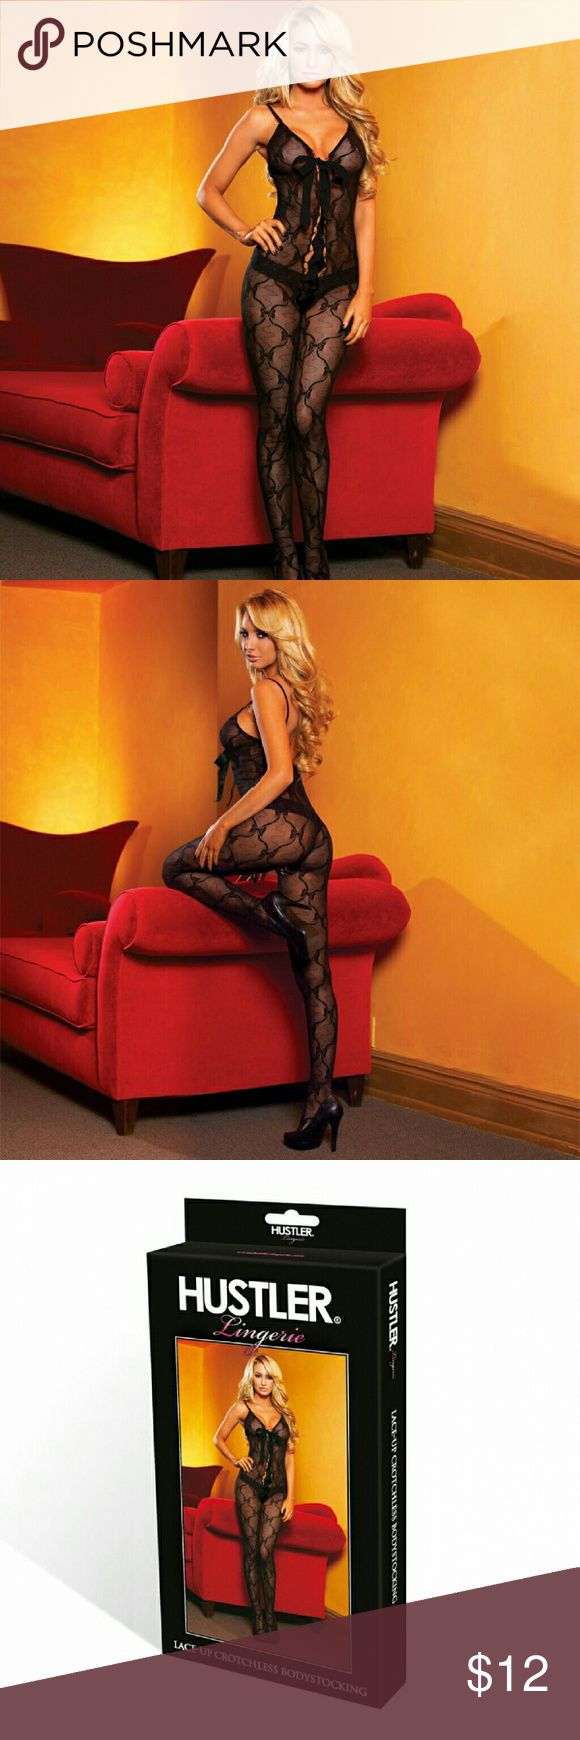 Hustler Lingeries Bow Lace Crotchless Bodystocking This sleek, sensuous bodystocking features a playful bow lace and center satin bow yo match with lace front. One size fit most  (4-10). Hustler Lingeries  Accessories Hosiery & Socks